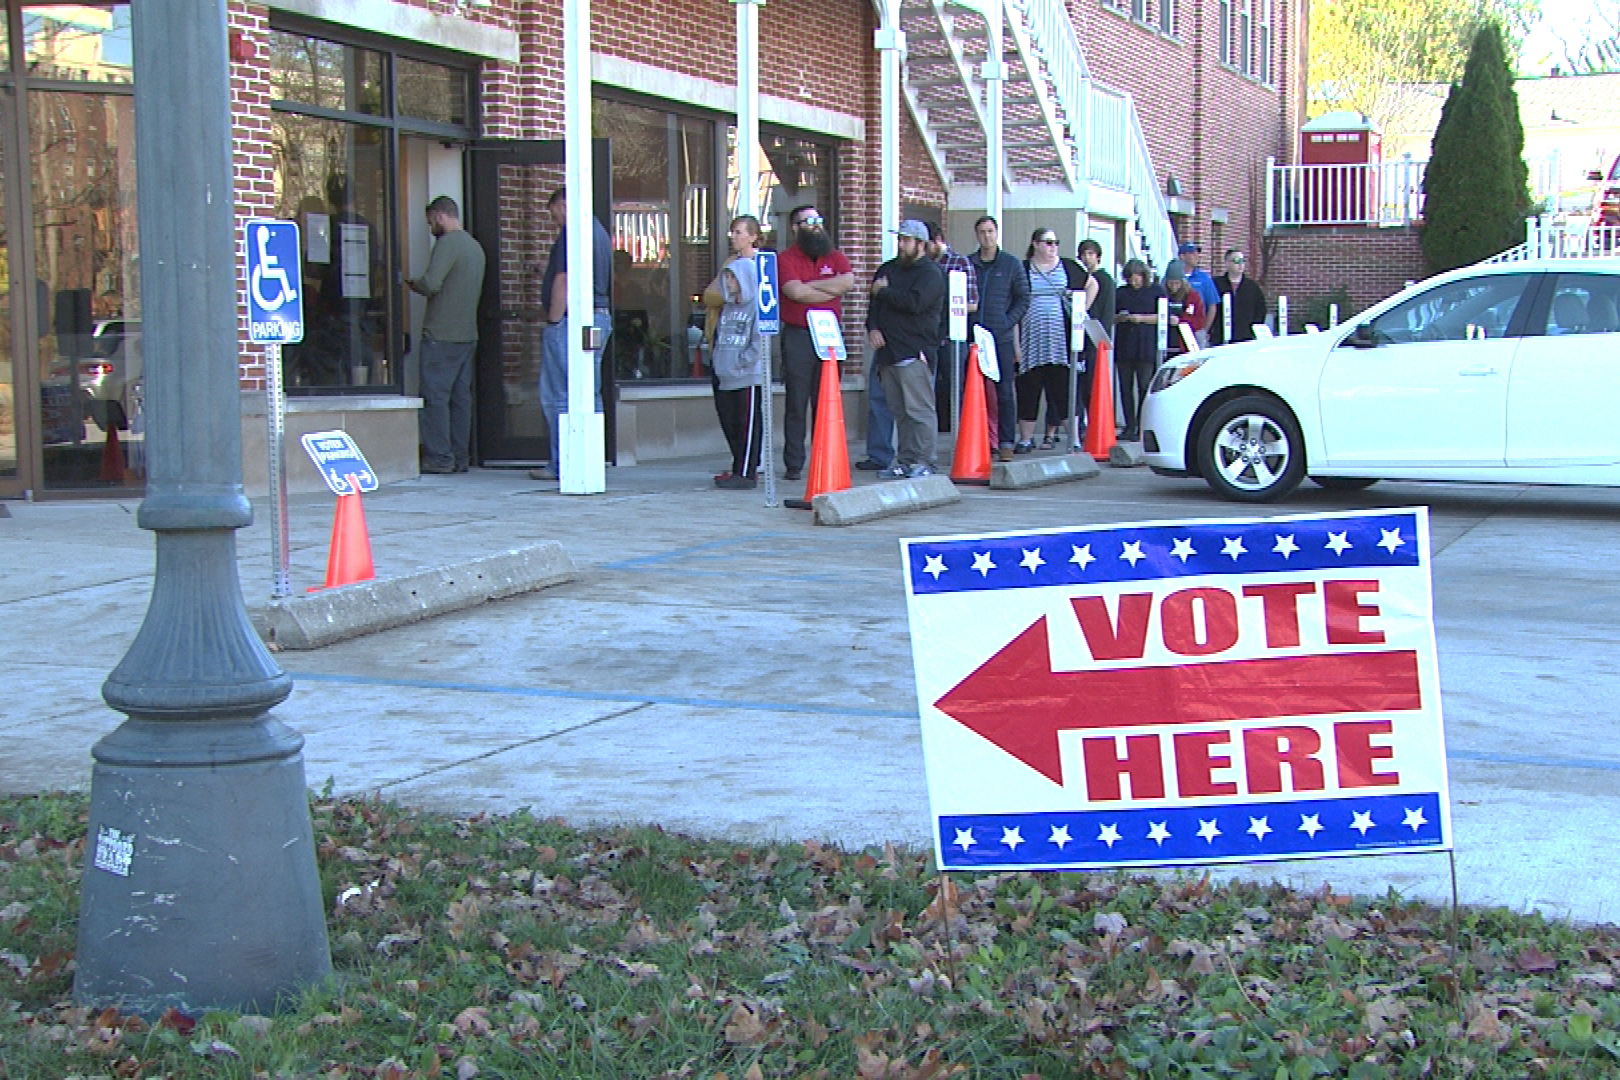 Polls are open 6 a.m. to 6 p.m. Tuesday.